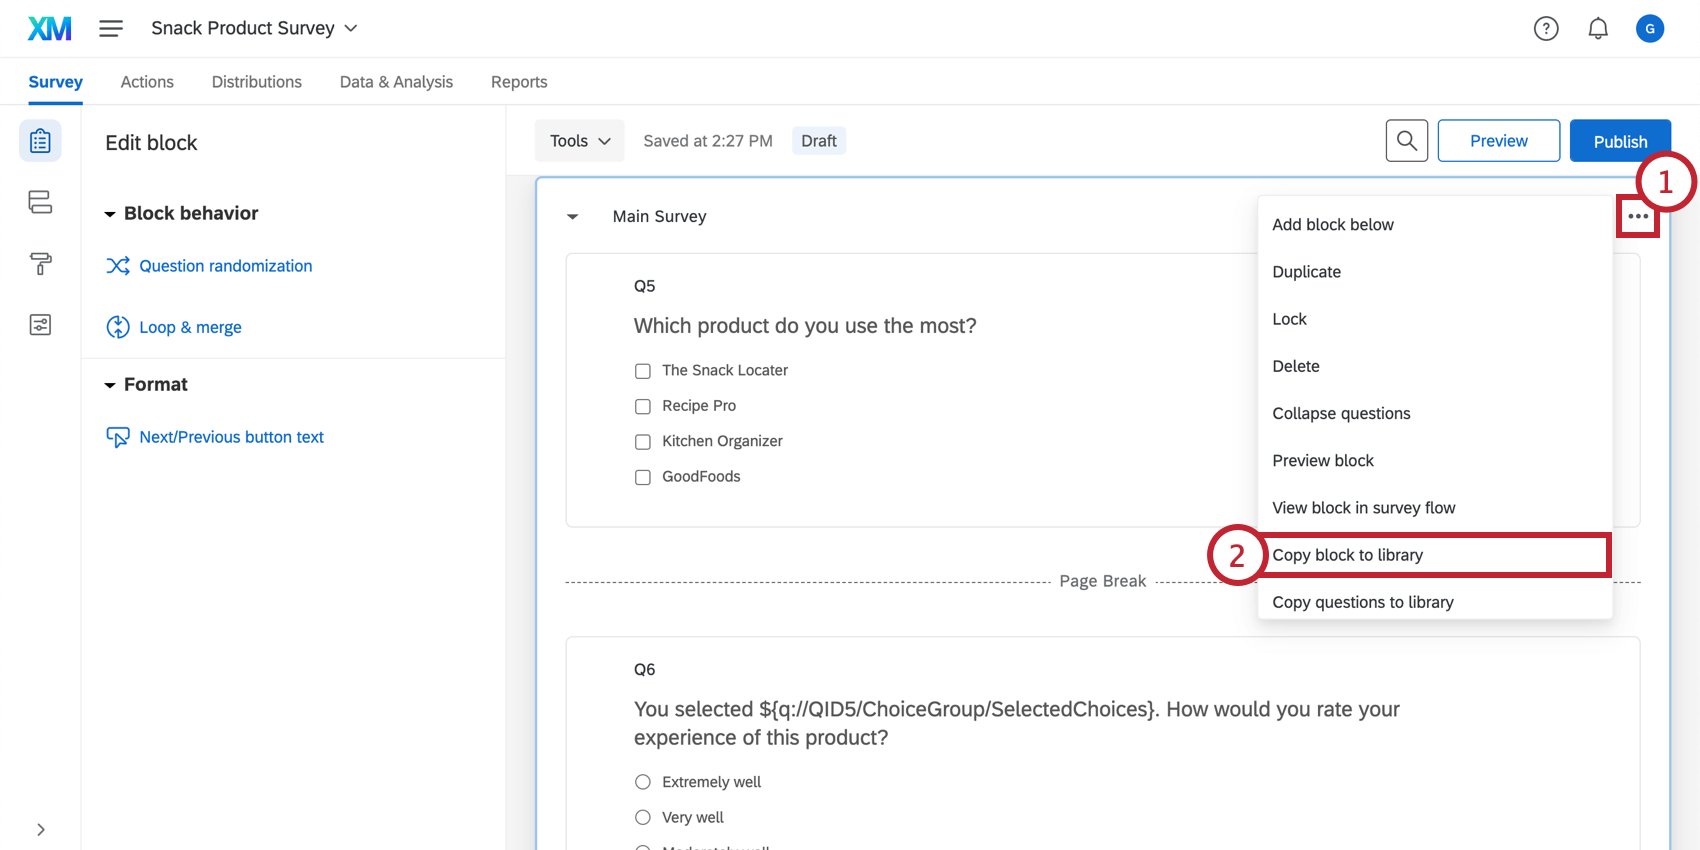 Copy block to library option in the block options drop down menu